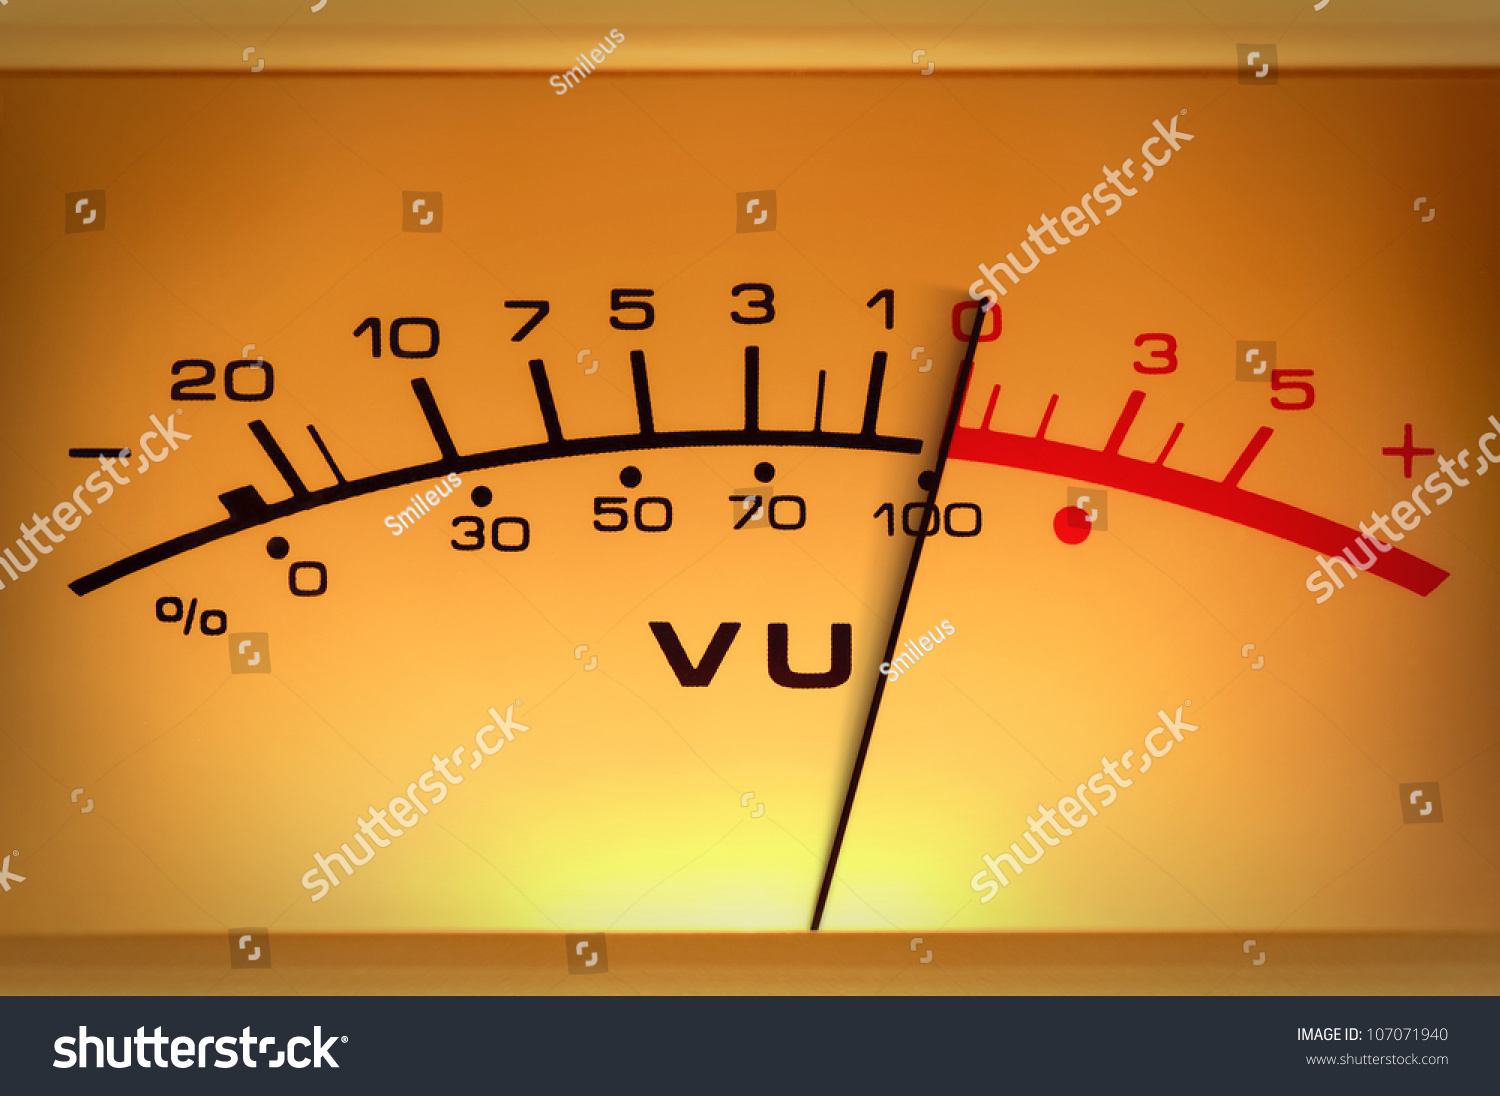 Analog Meter Needle : Analog measuring device with the needle in motion studio